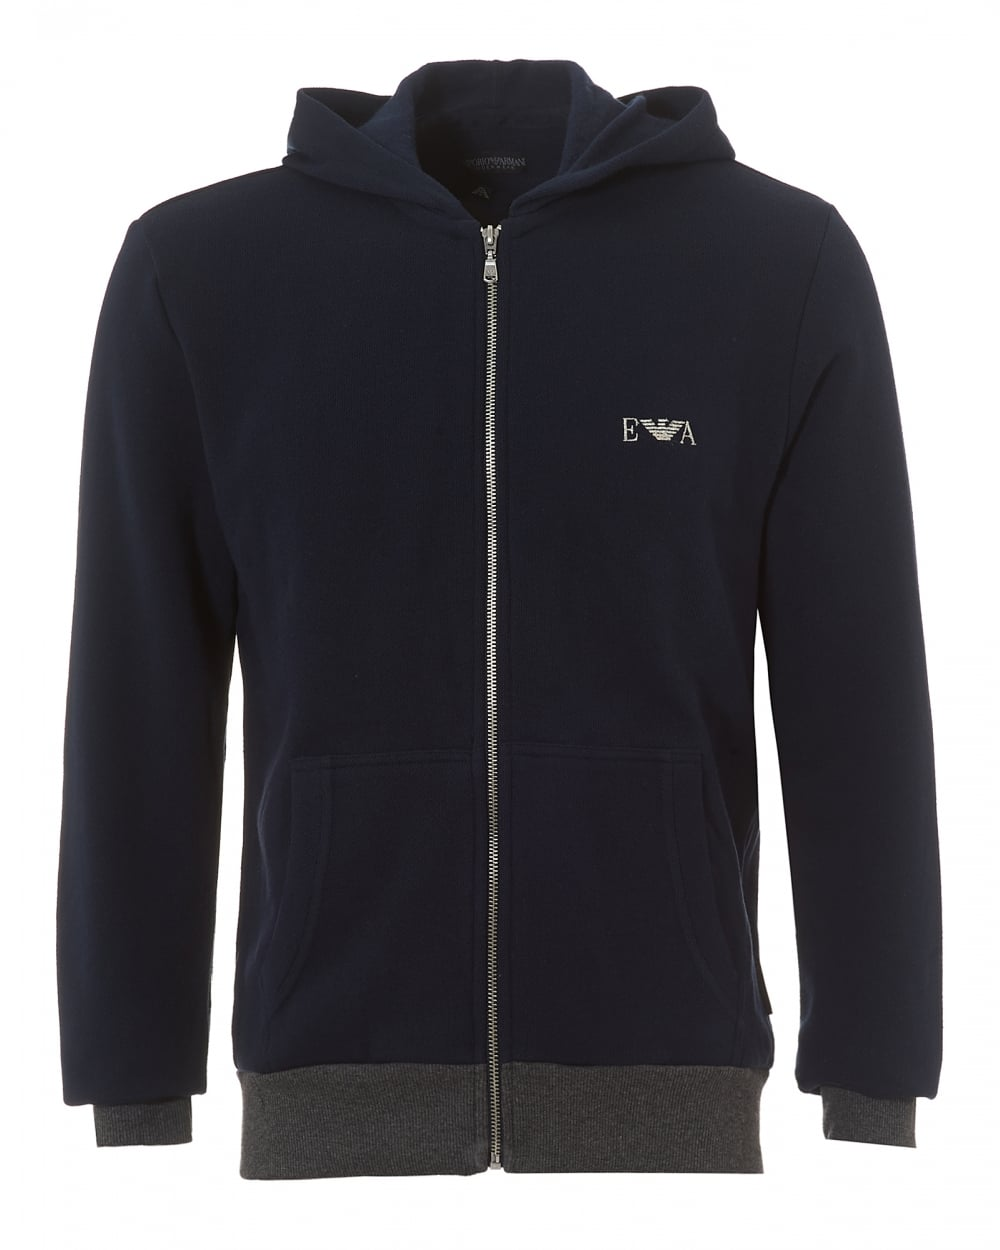 emporio armani mens zip up hoodie navy blue logo hooded sweater. Black Bedroom Furniture Sets. Home Design Ideas